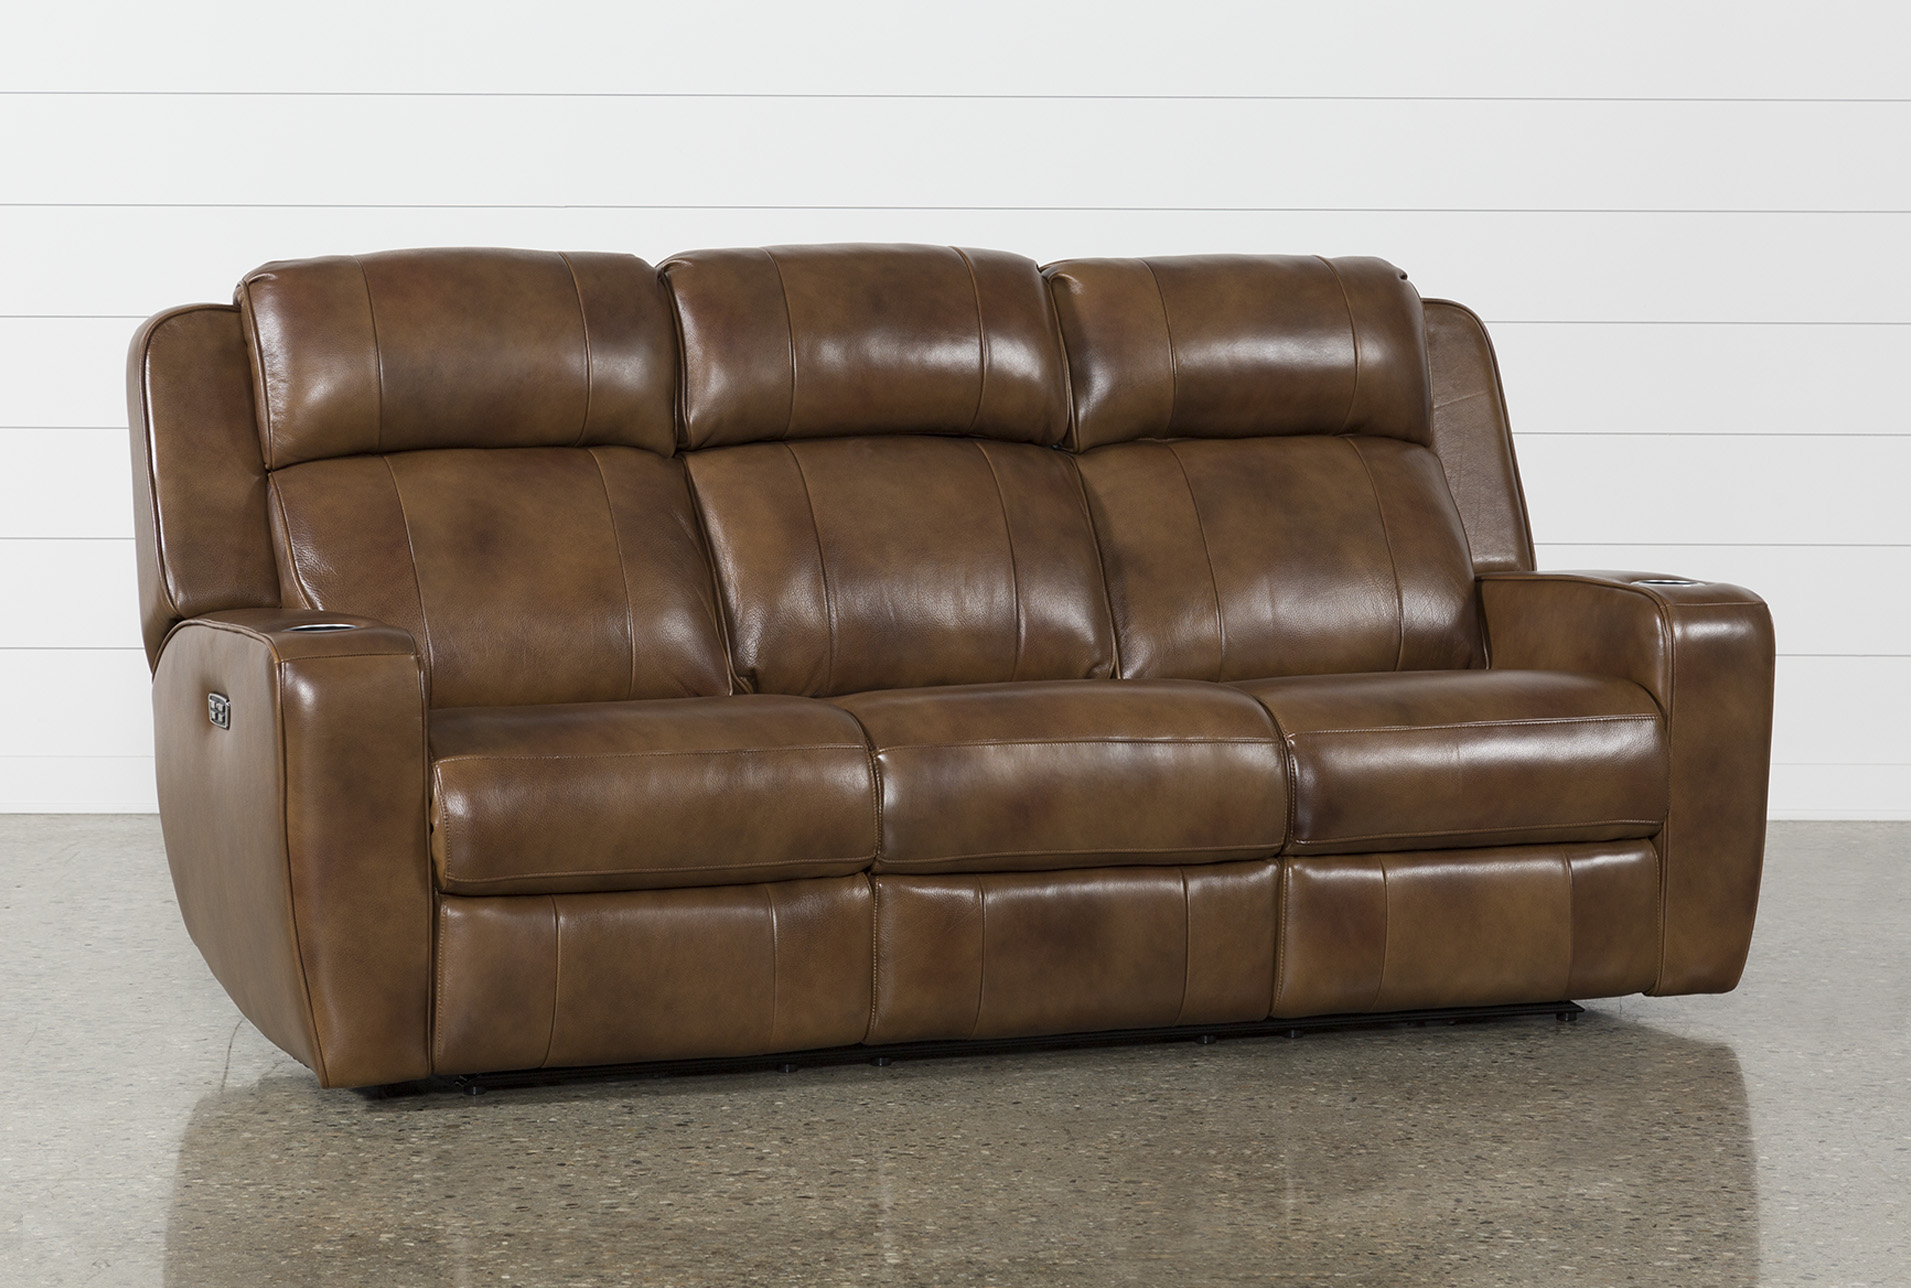 Phelps Leather Power Reclining Sofa W/Power Headrest U0026 Usb   360